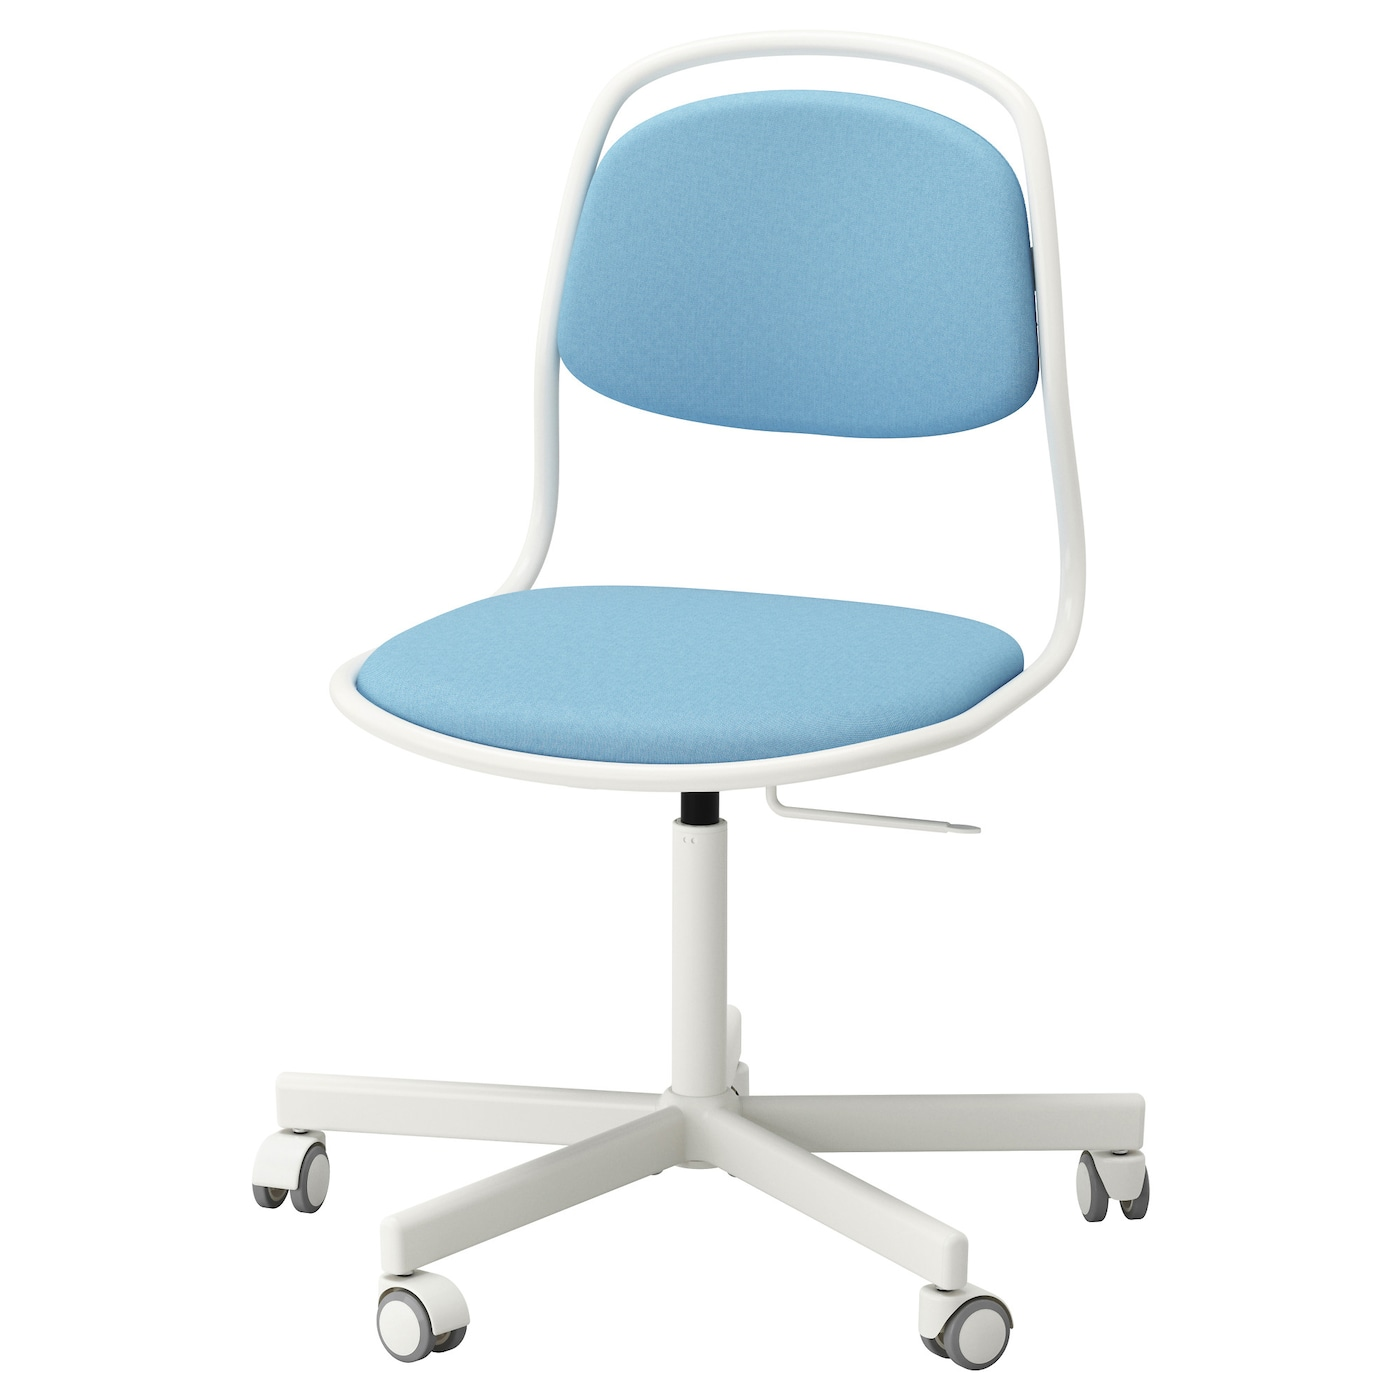 rfj ll sporren swivel chair white vissle light blue ikea. Black Bedroom Furniture Sets. Home Design Ideas